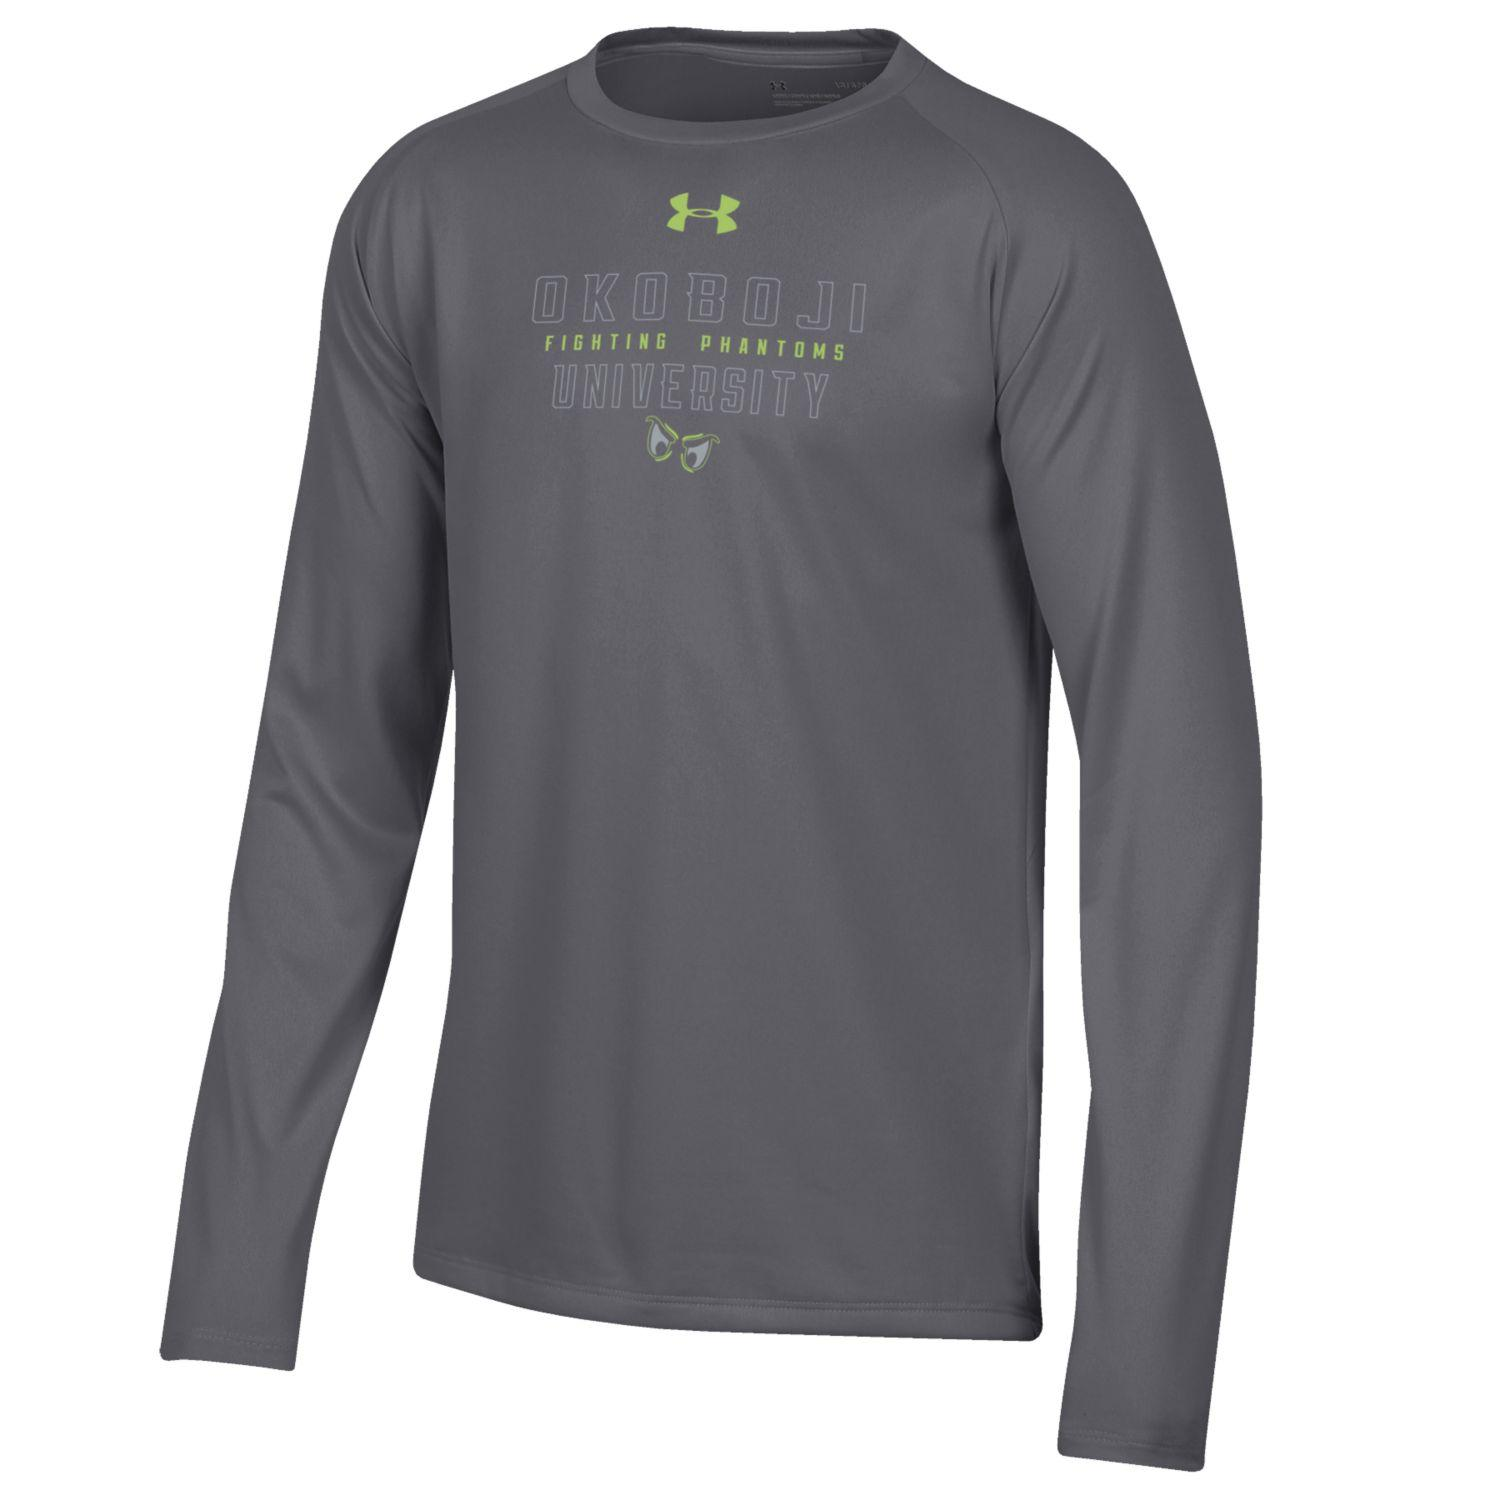 Okoboji Phantom Boys Tech Long Sleeve Tee - Carbon Heather